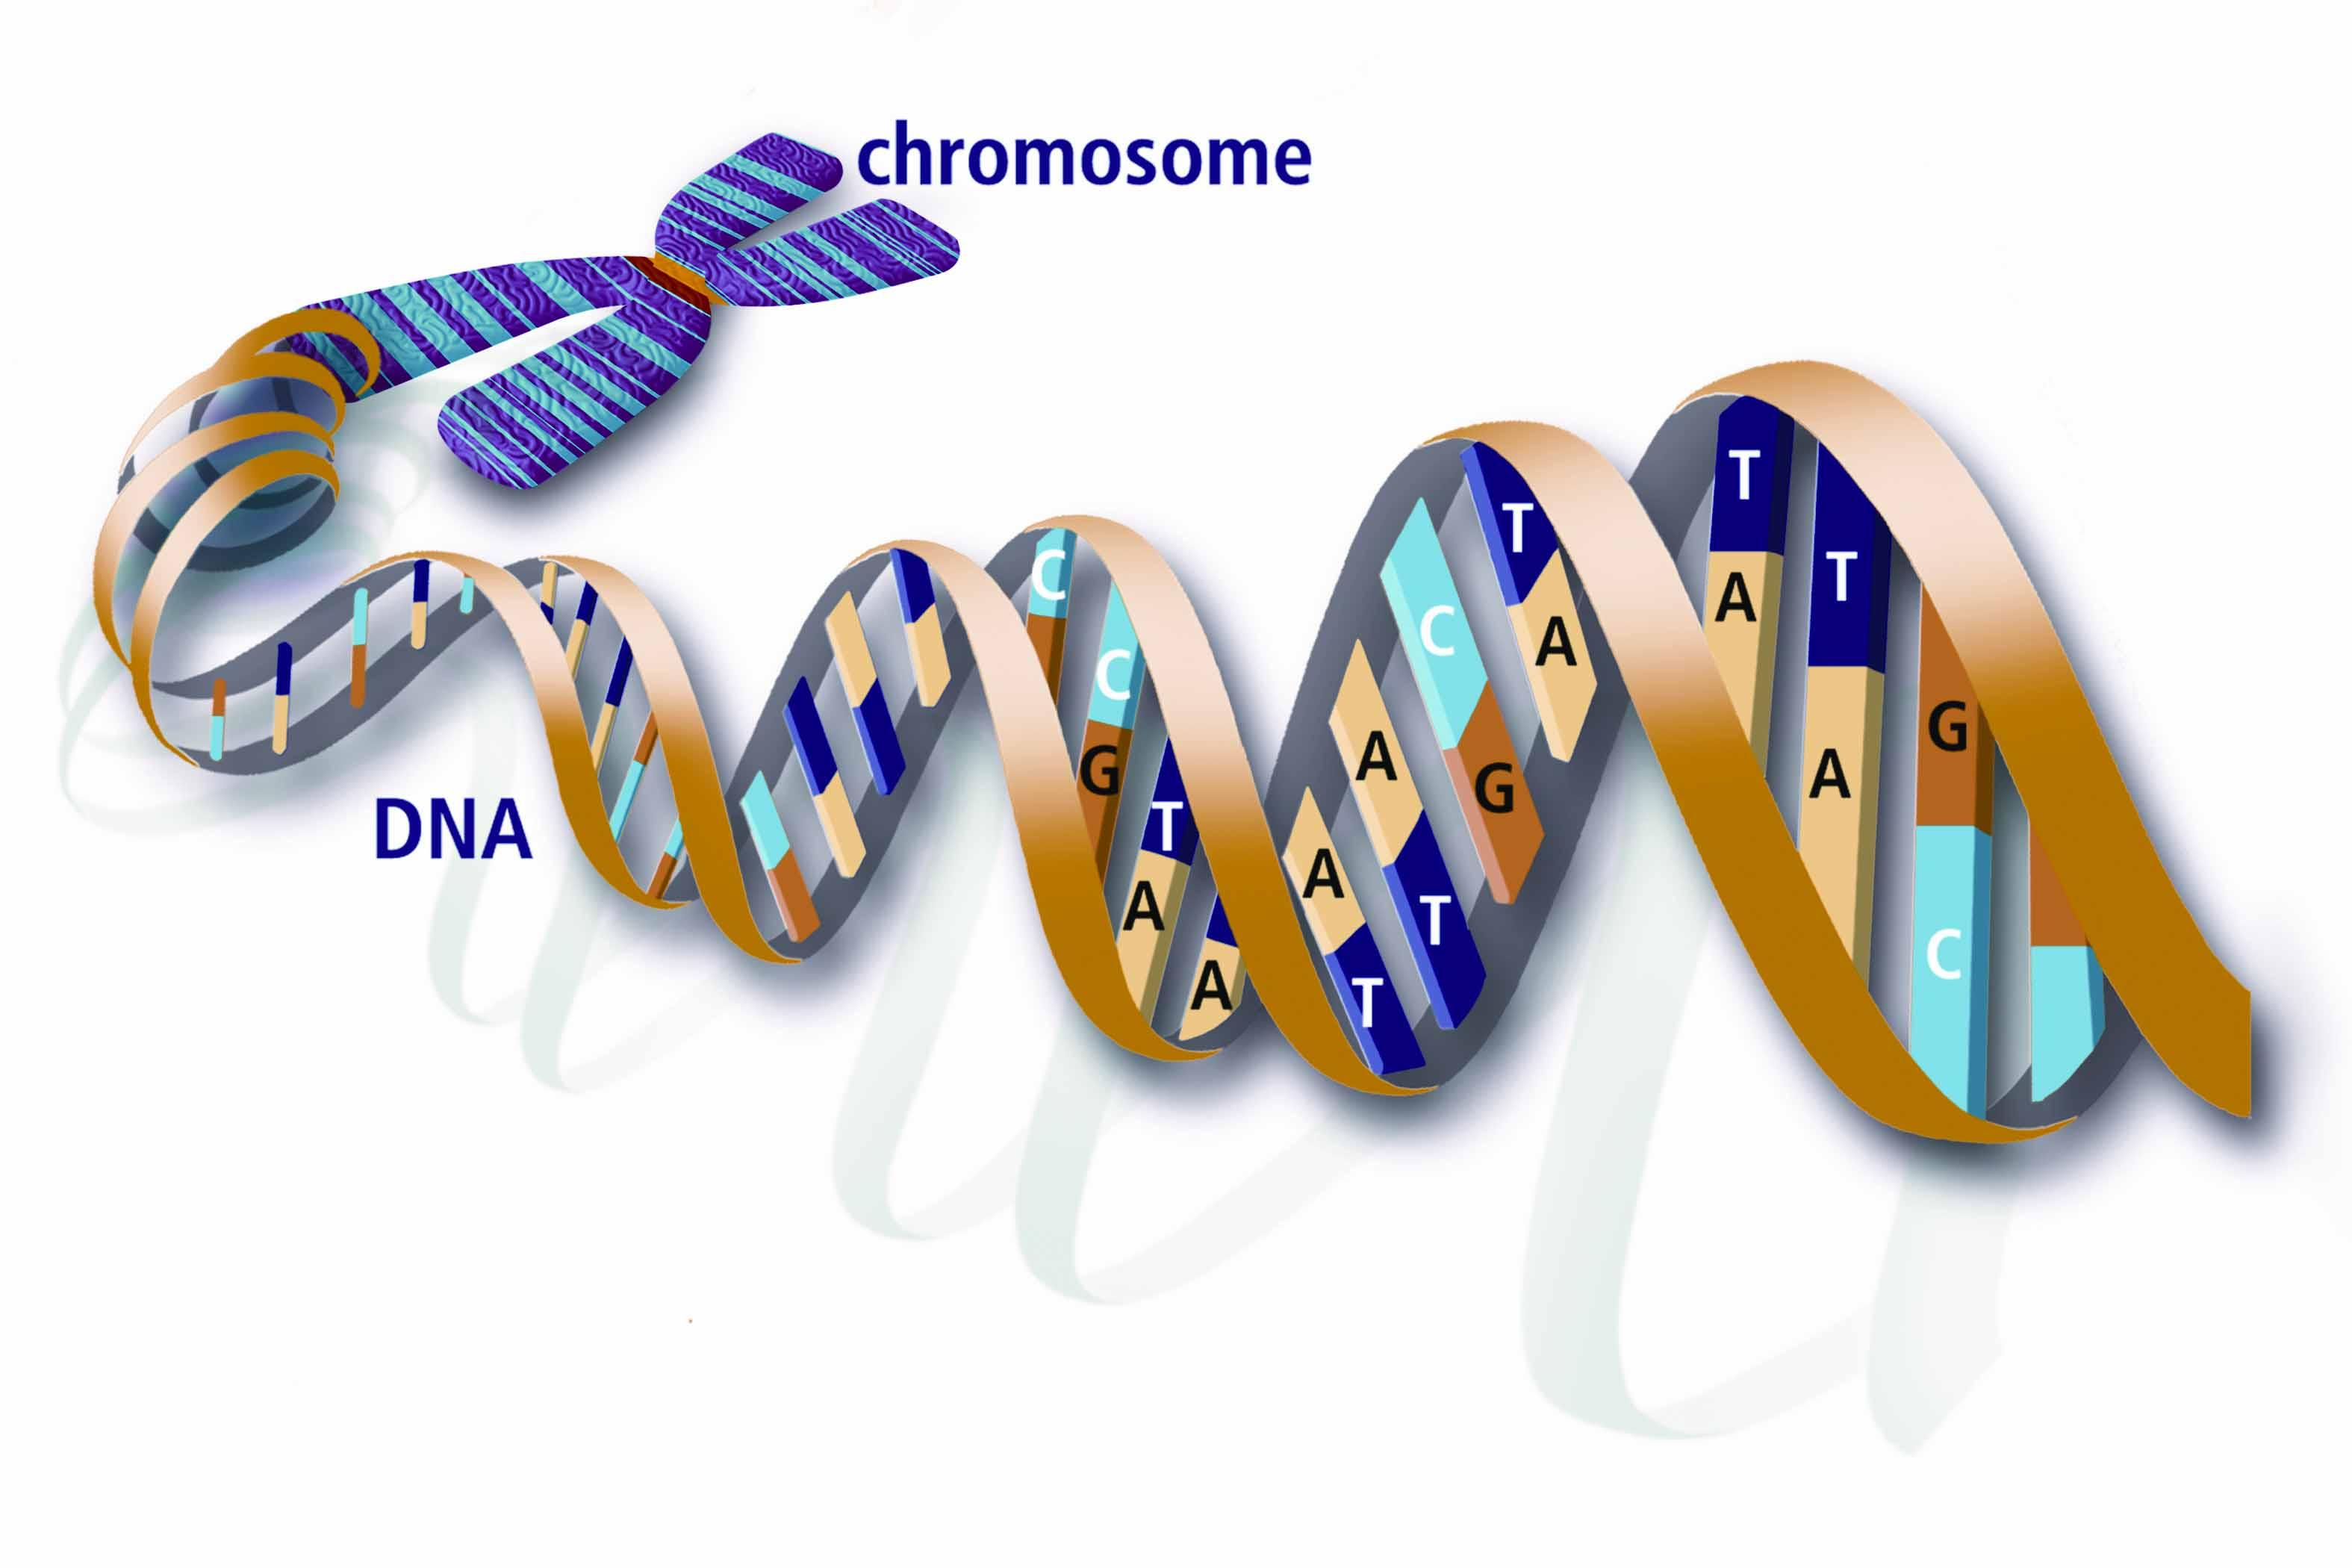 https://hypescience.com/wp-content/uploads/2013/06/DNA-with-Features.jpg